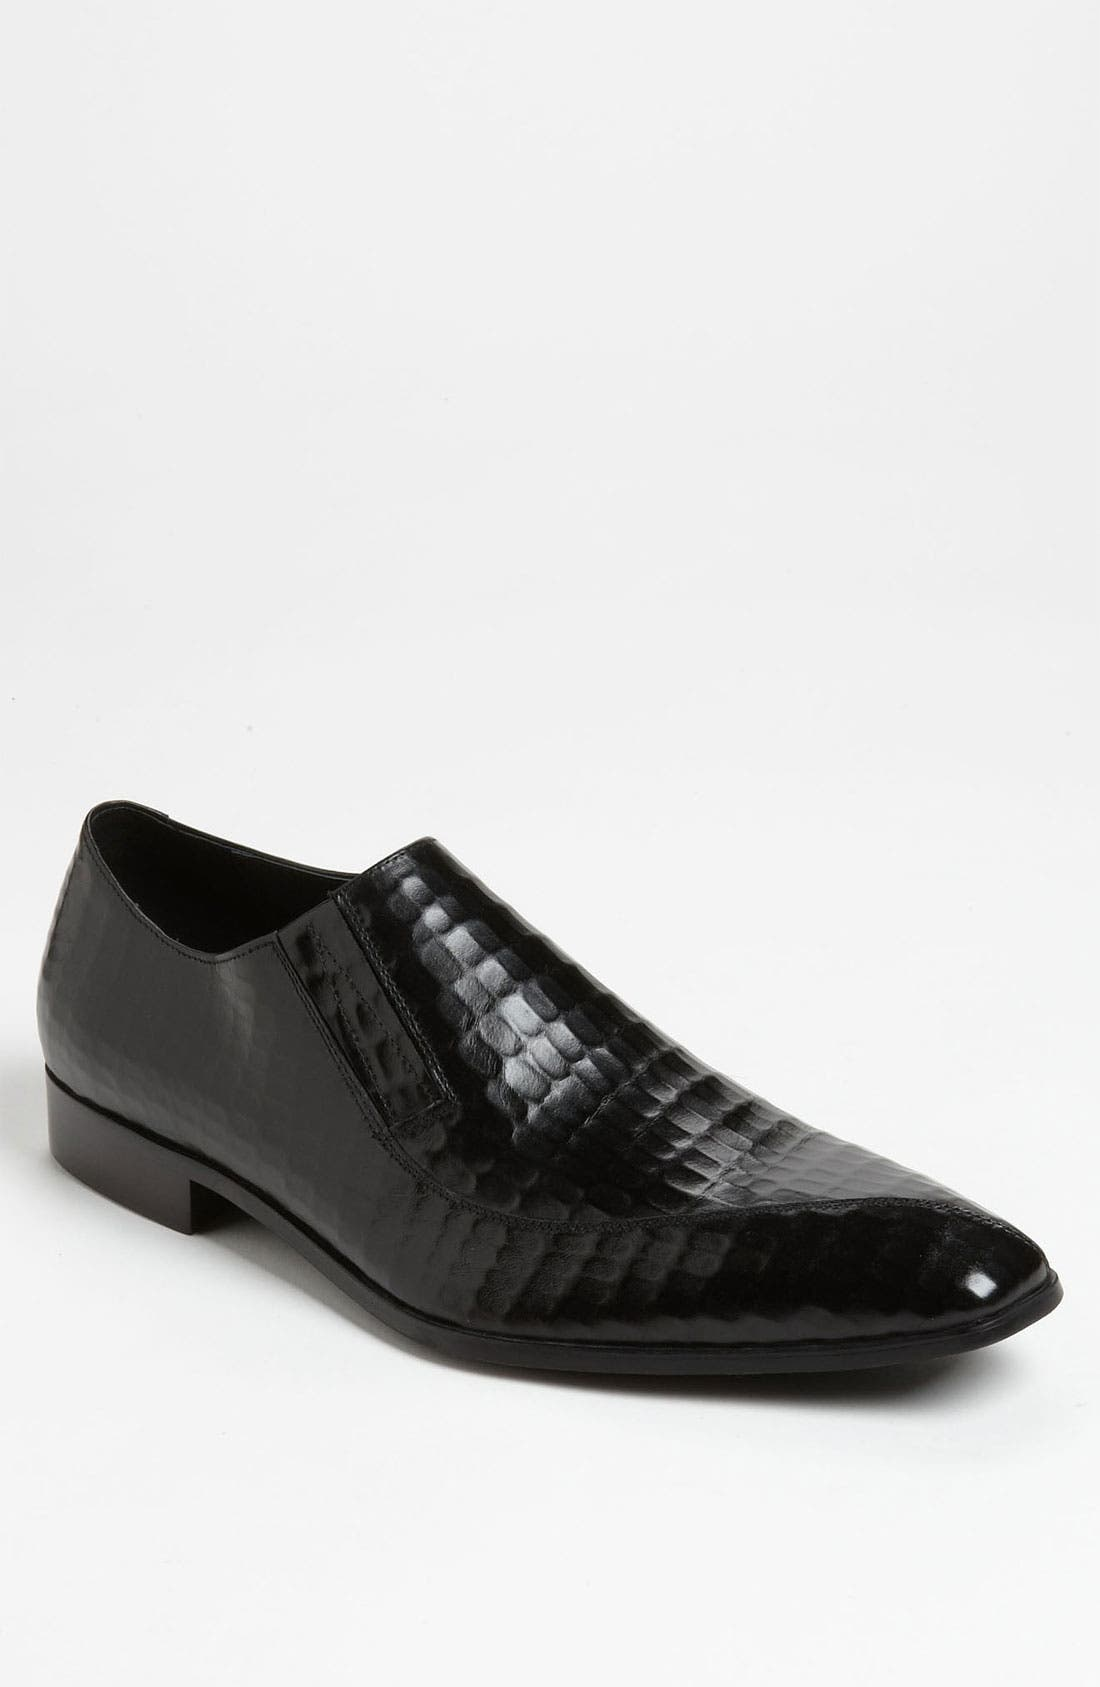 Alternate Image 1 Selected - Kenneth Cole New York 'Top Class' Slip-On